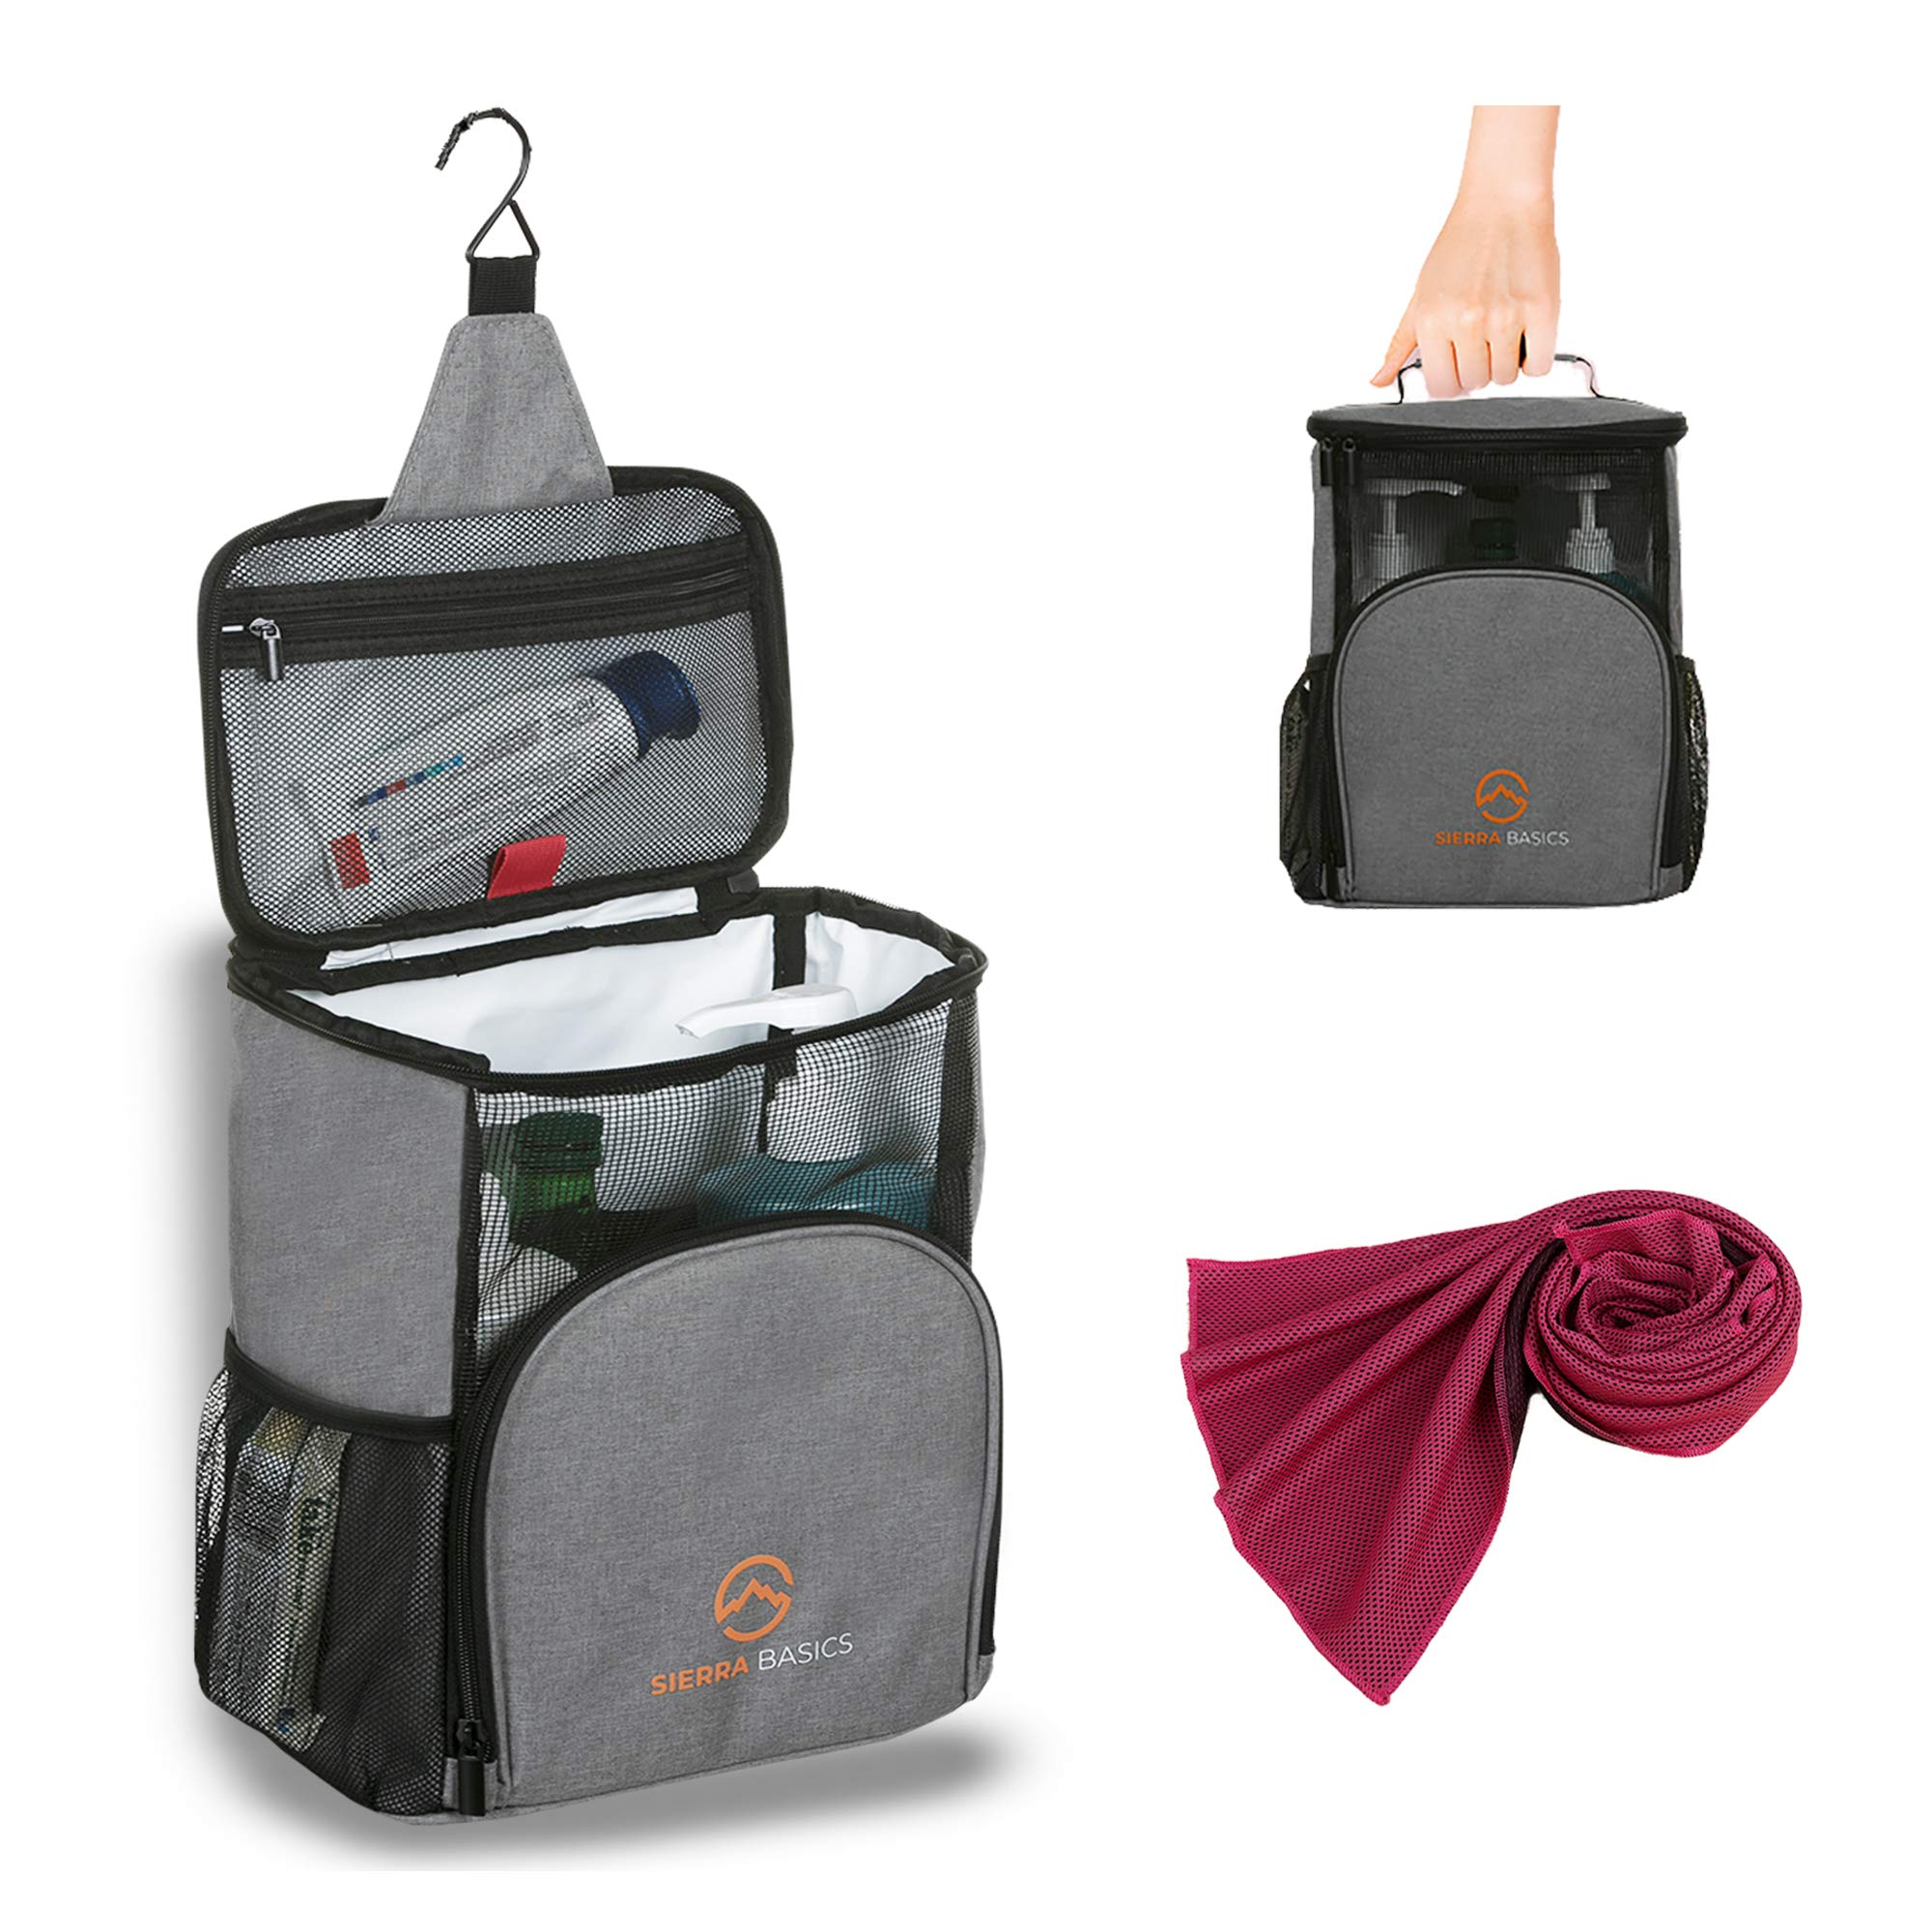 Sierra Basics Shower Caddy Portable, Bath Organizer with Hook, Oxford Hanging Mesh Bag, Quick Dry Mildew Resistant, Shower Tote Bag for College Dorm Gym Swimming Travel for Men Women Grey